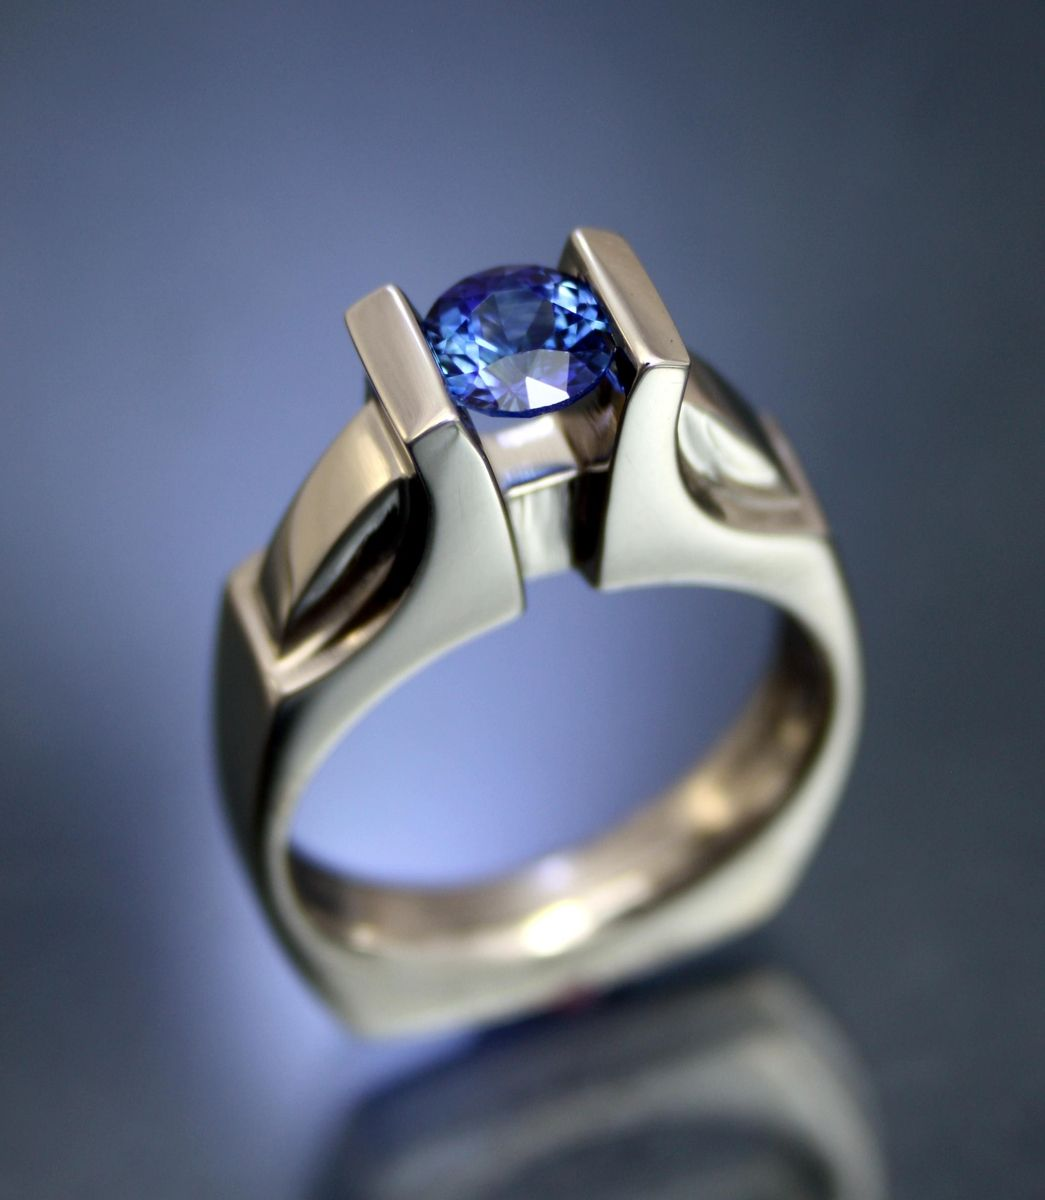 Handmade natural sapphire in 18kpd white gold by art for Sapphire studios jewelry reviews